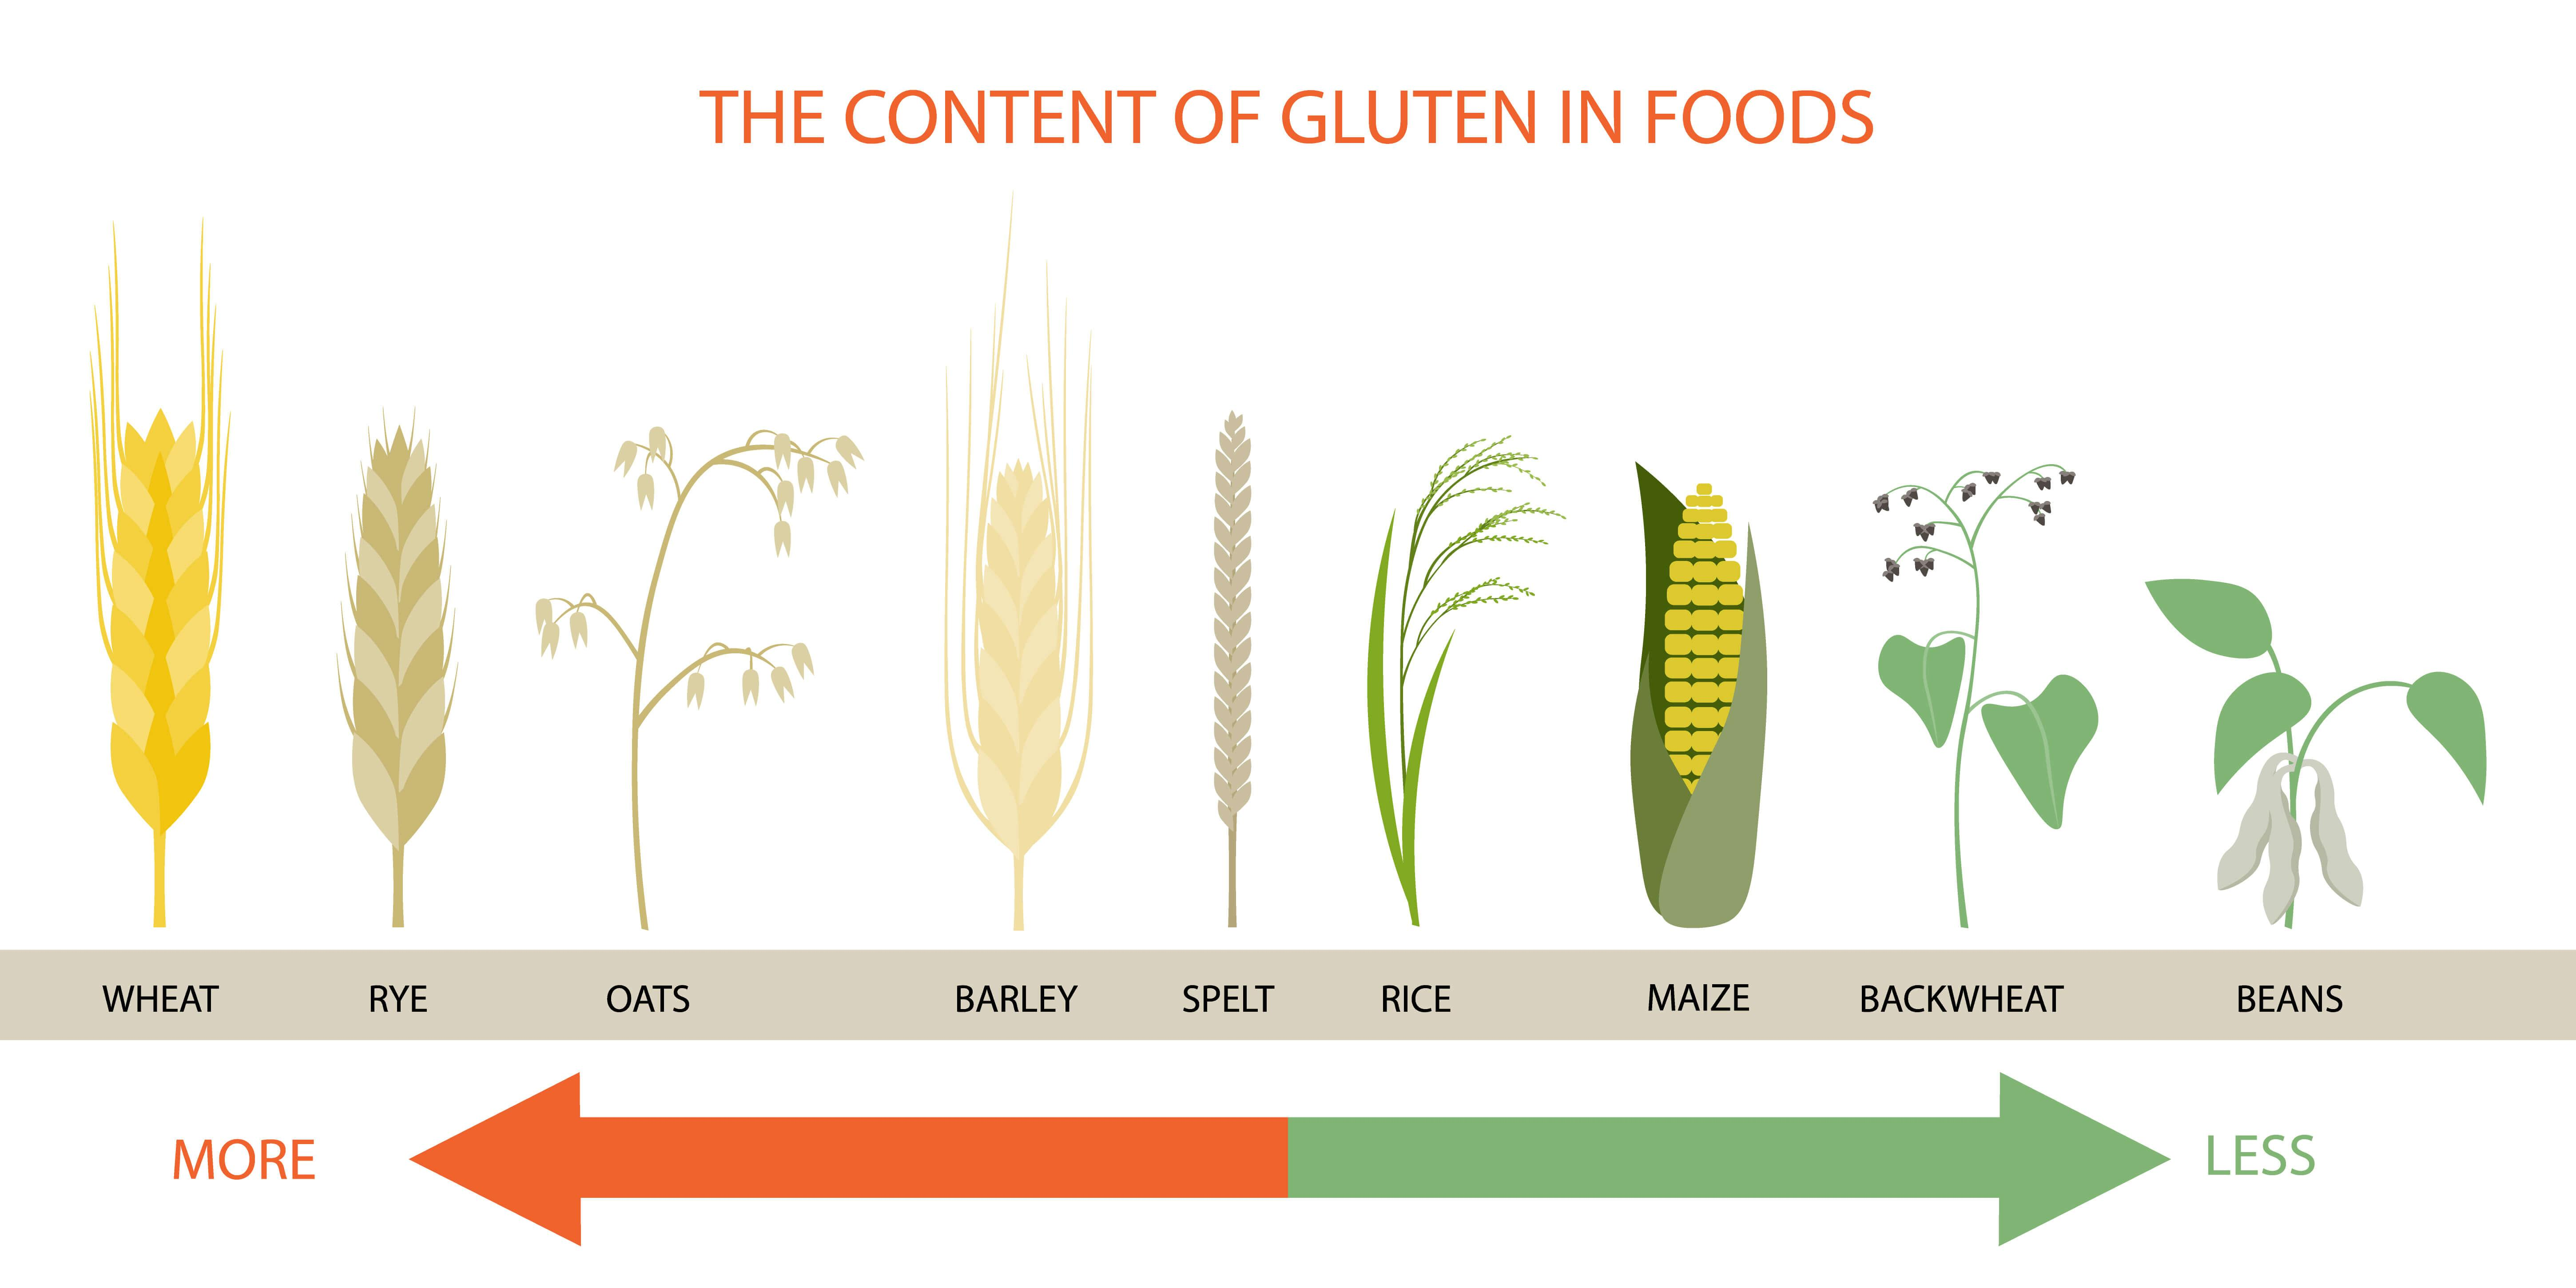 Illustration of gluten content of various foods on a scale